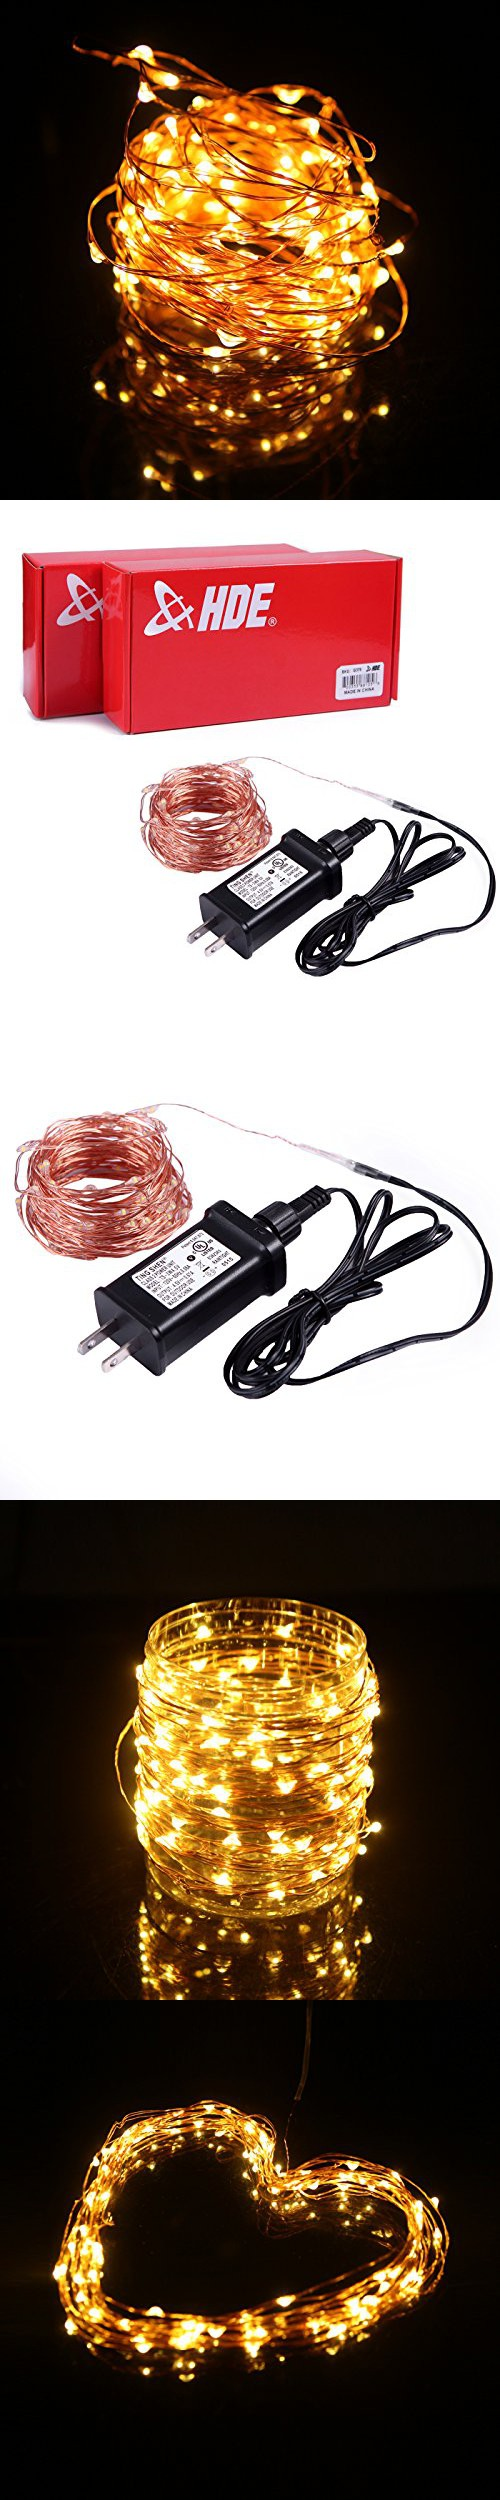 HDE Waterproof LED String Lights [Flexible Copper Wire] Indoor ...